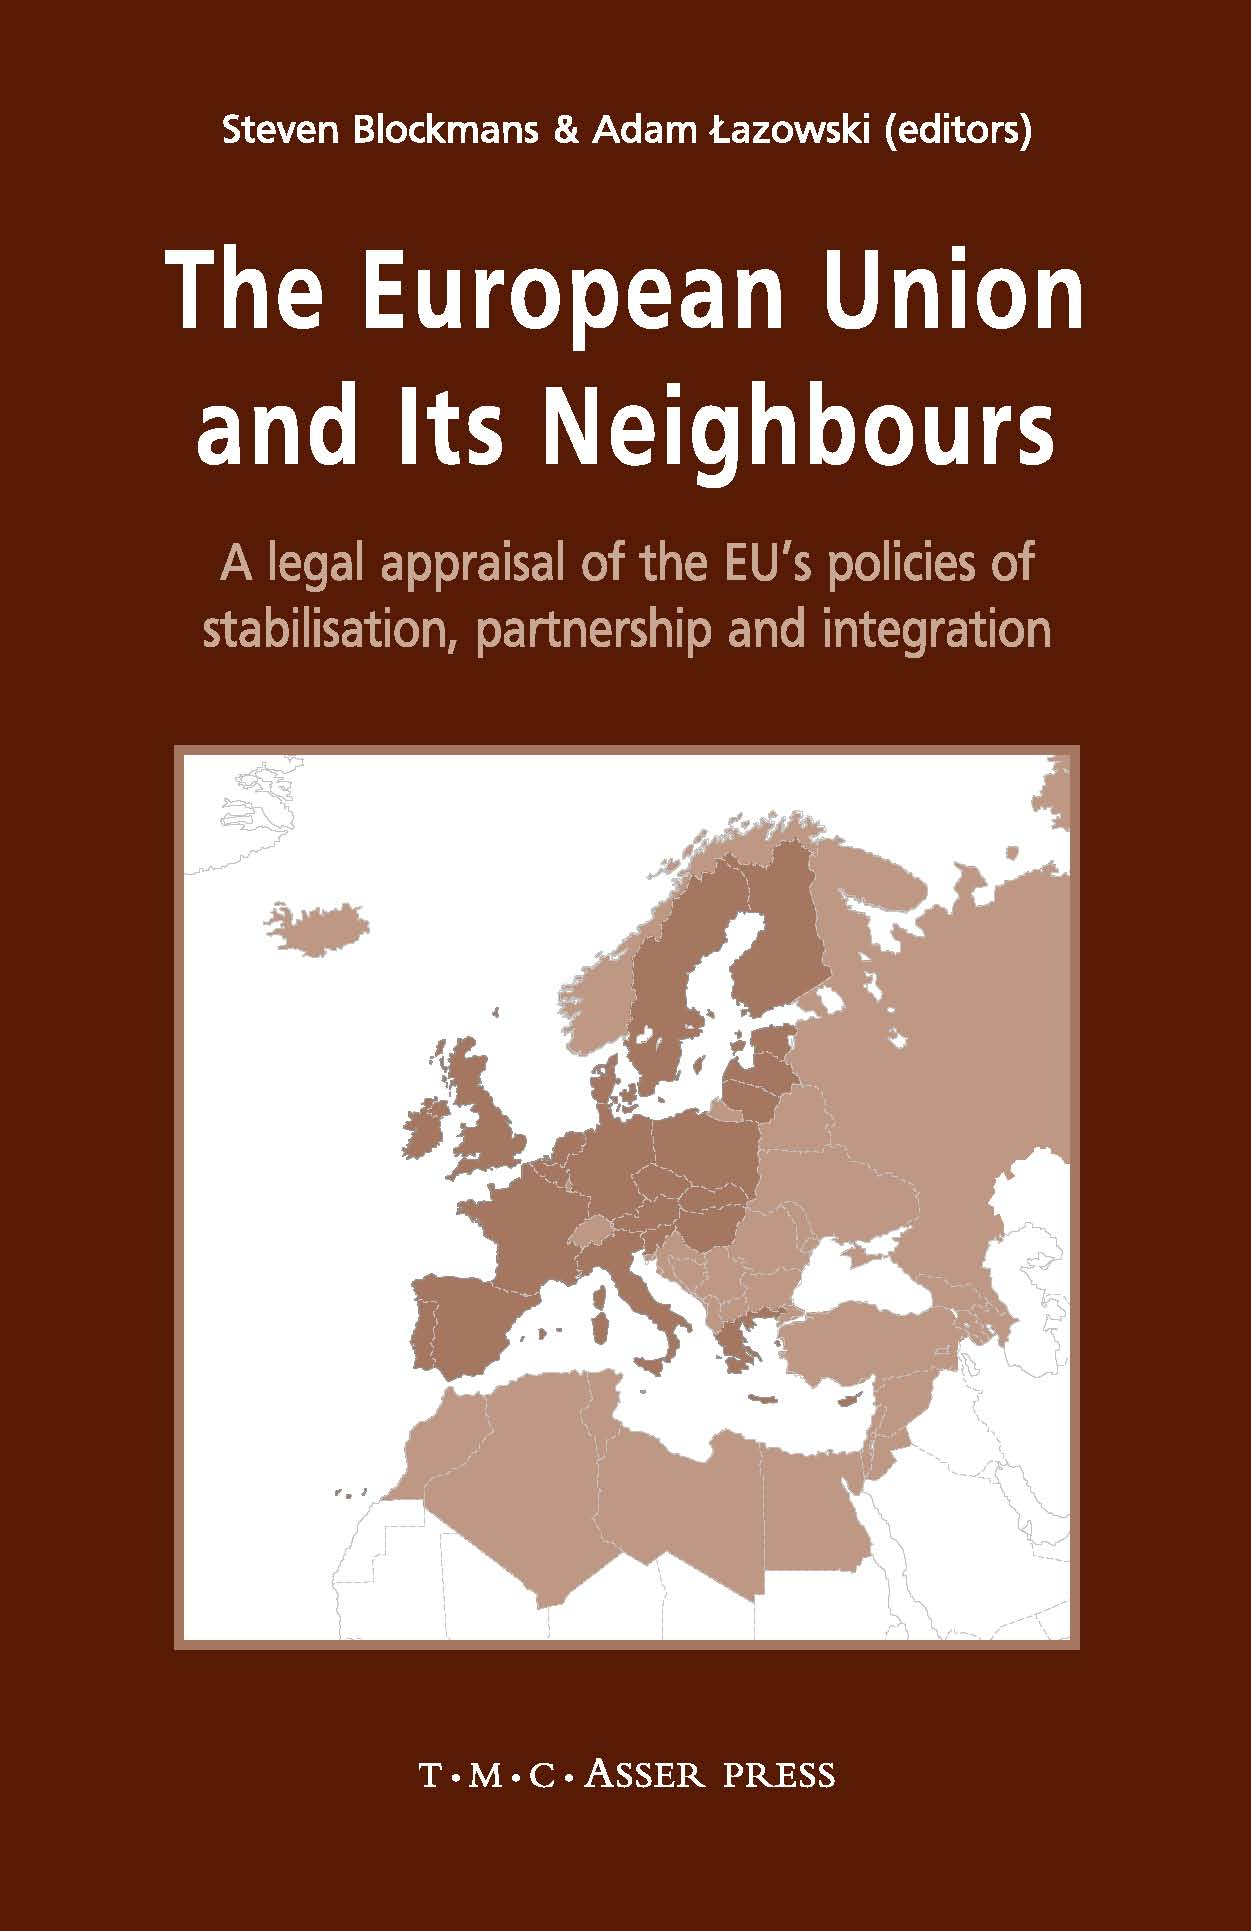 The European Union and its Neighbours - A Legal Appraisal of the EU's Policies of Stabilisation, Partnership and Integration